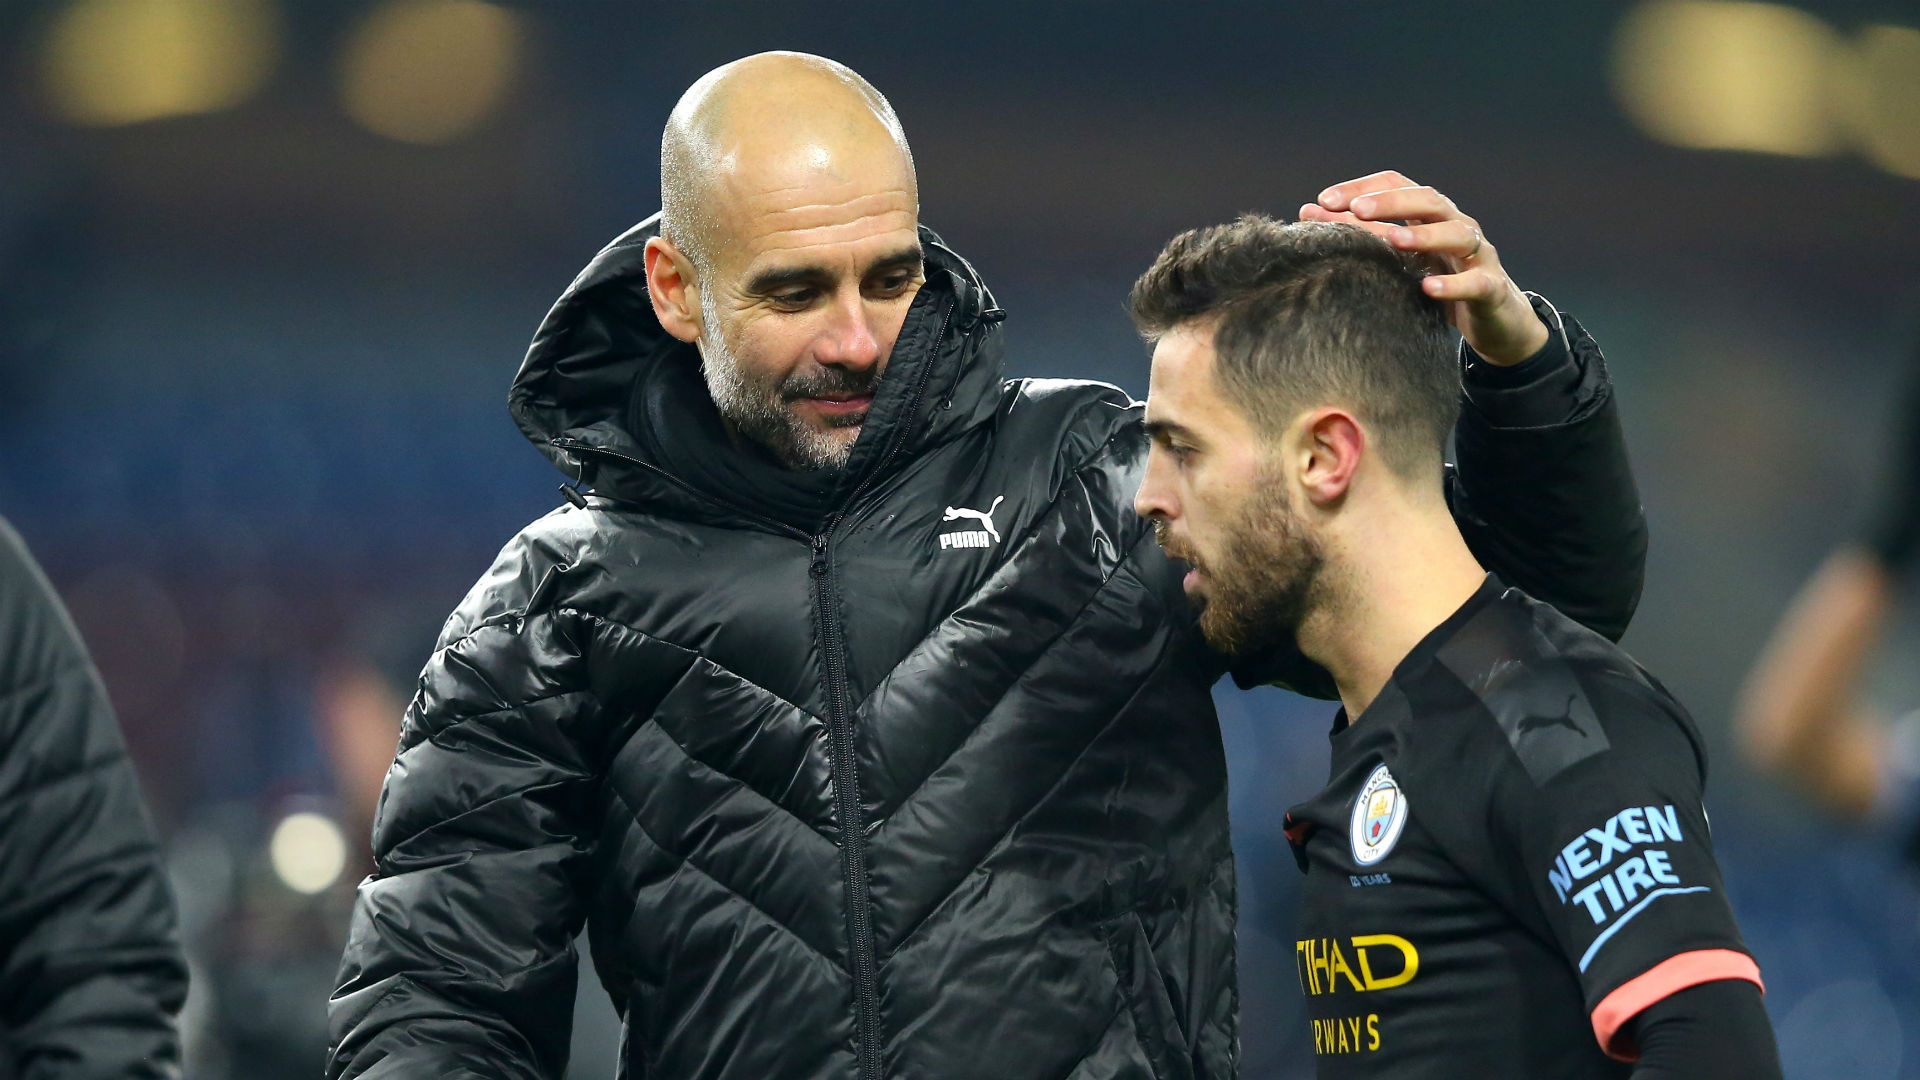 Guardiola: A little bit crazy for Manchester City to think about the title